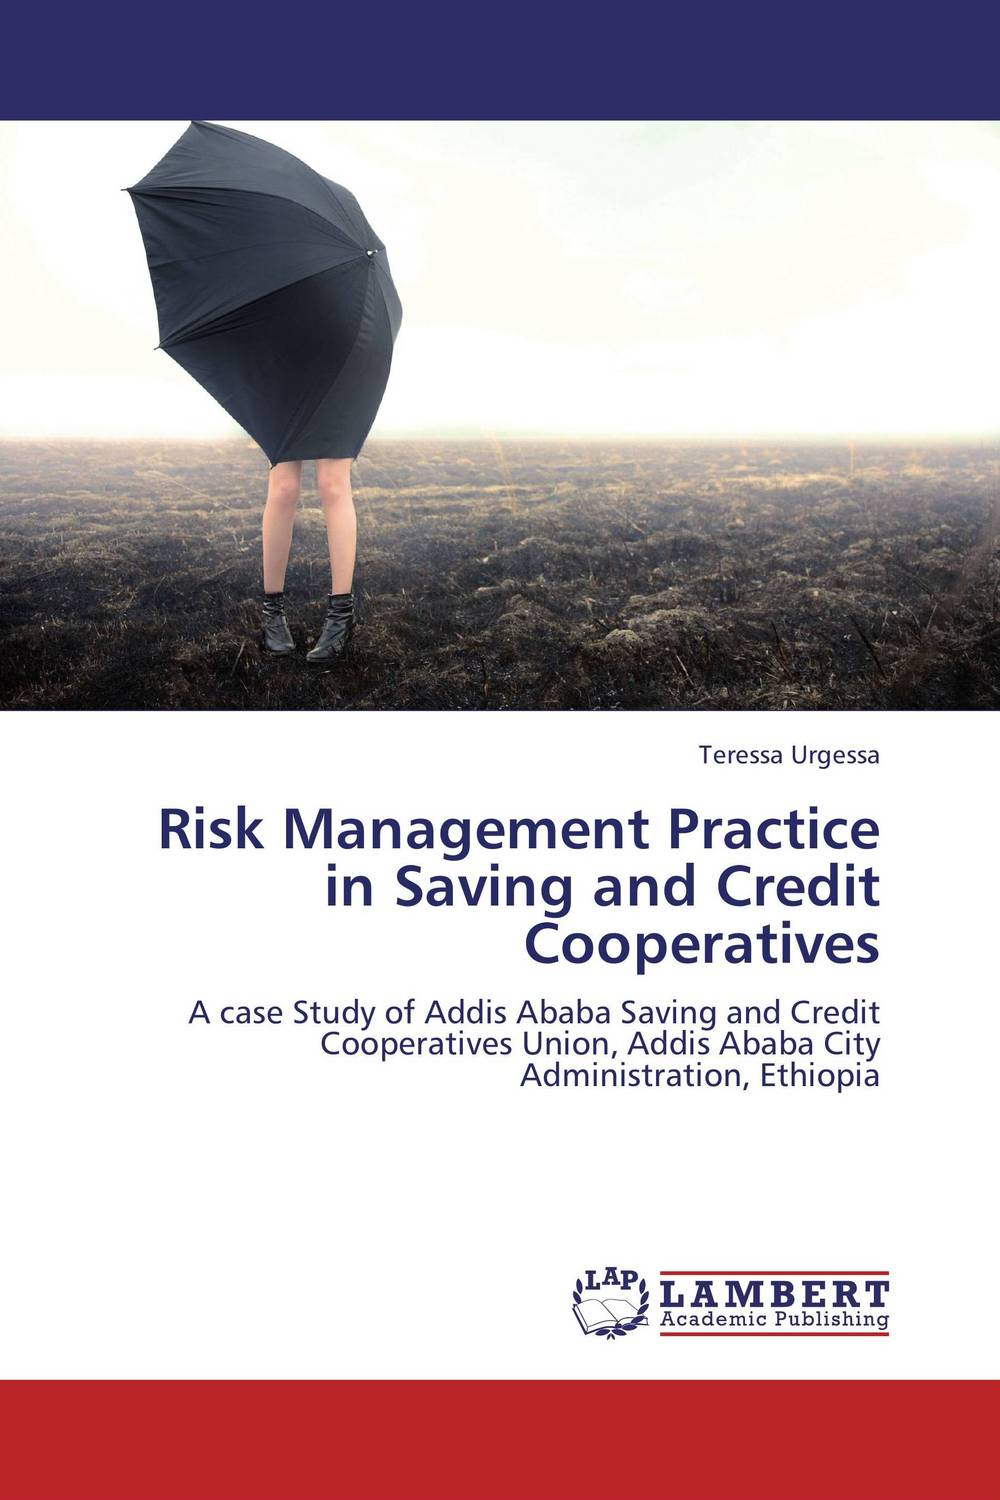 Risk Management Practice in Saving and Credit Cooperatives kenji imai advanced financial risk management tools and techniques for integrated credit risk and interest rate risk management